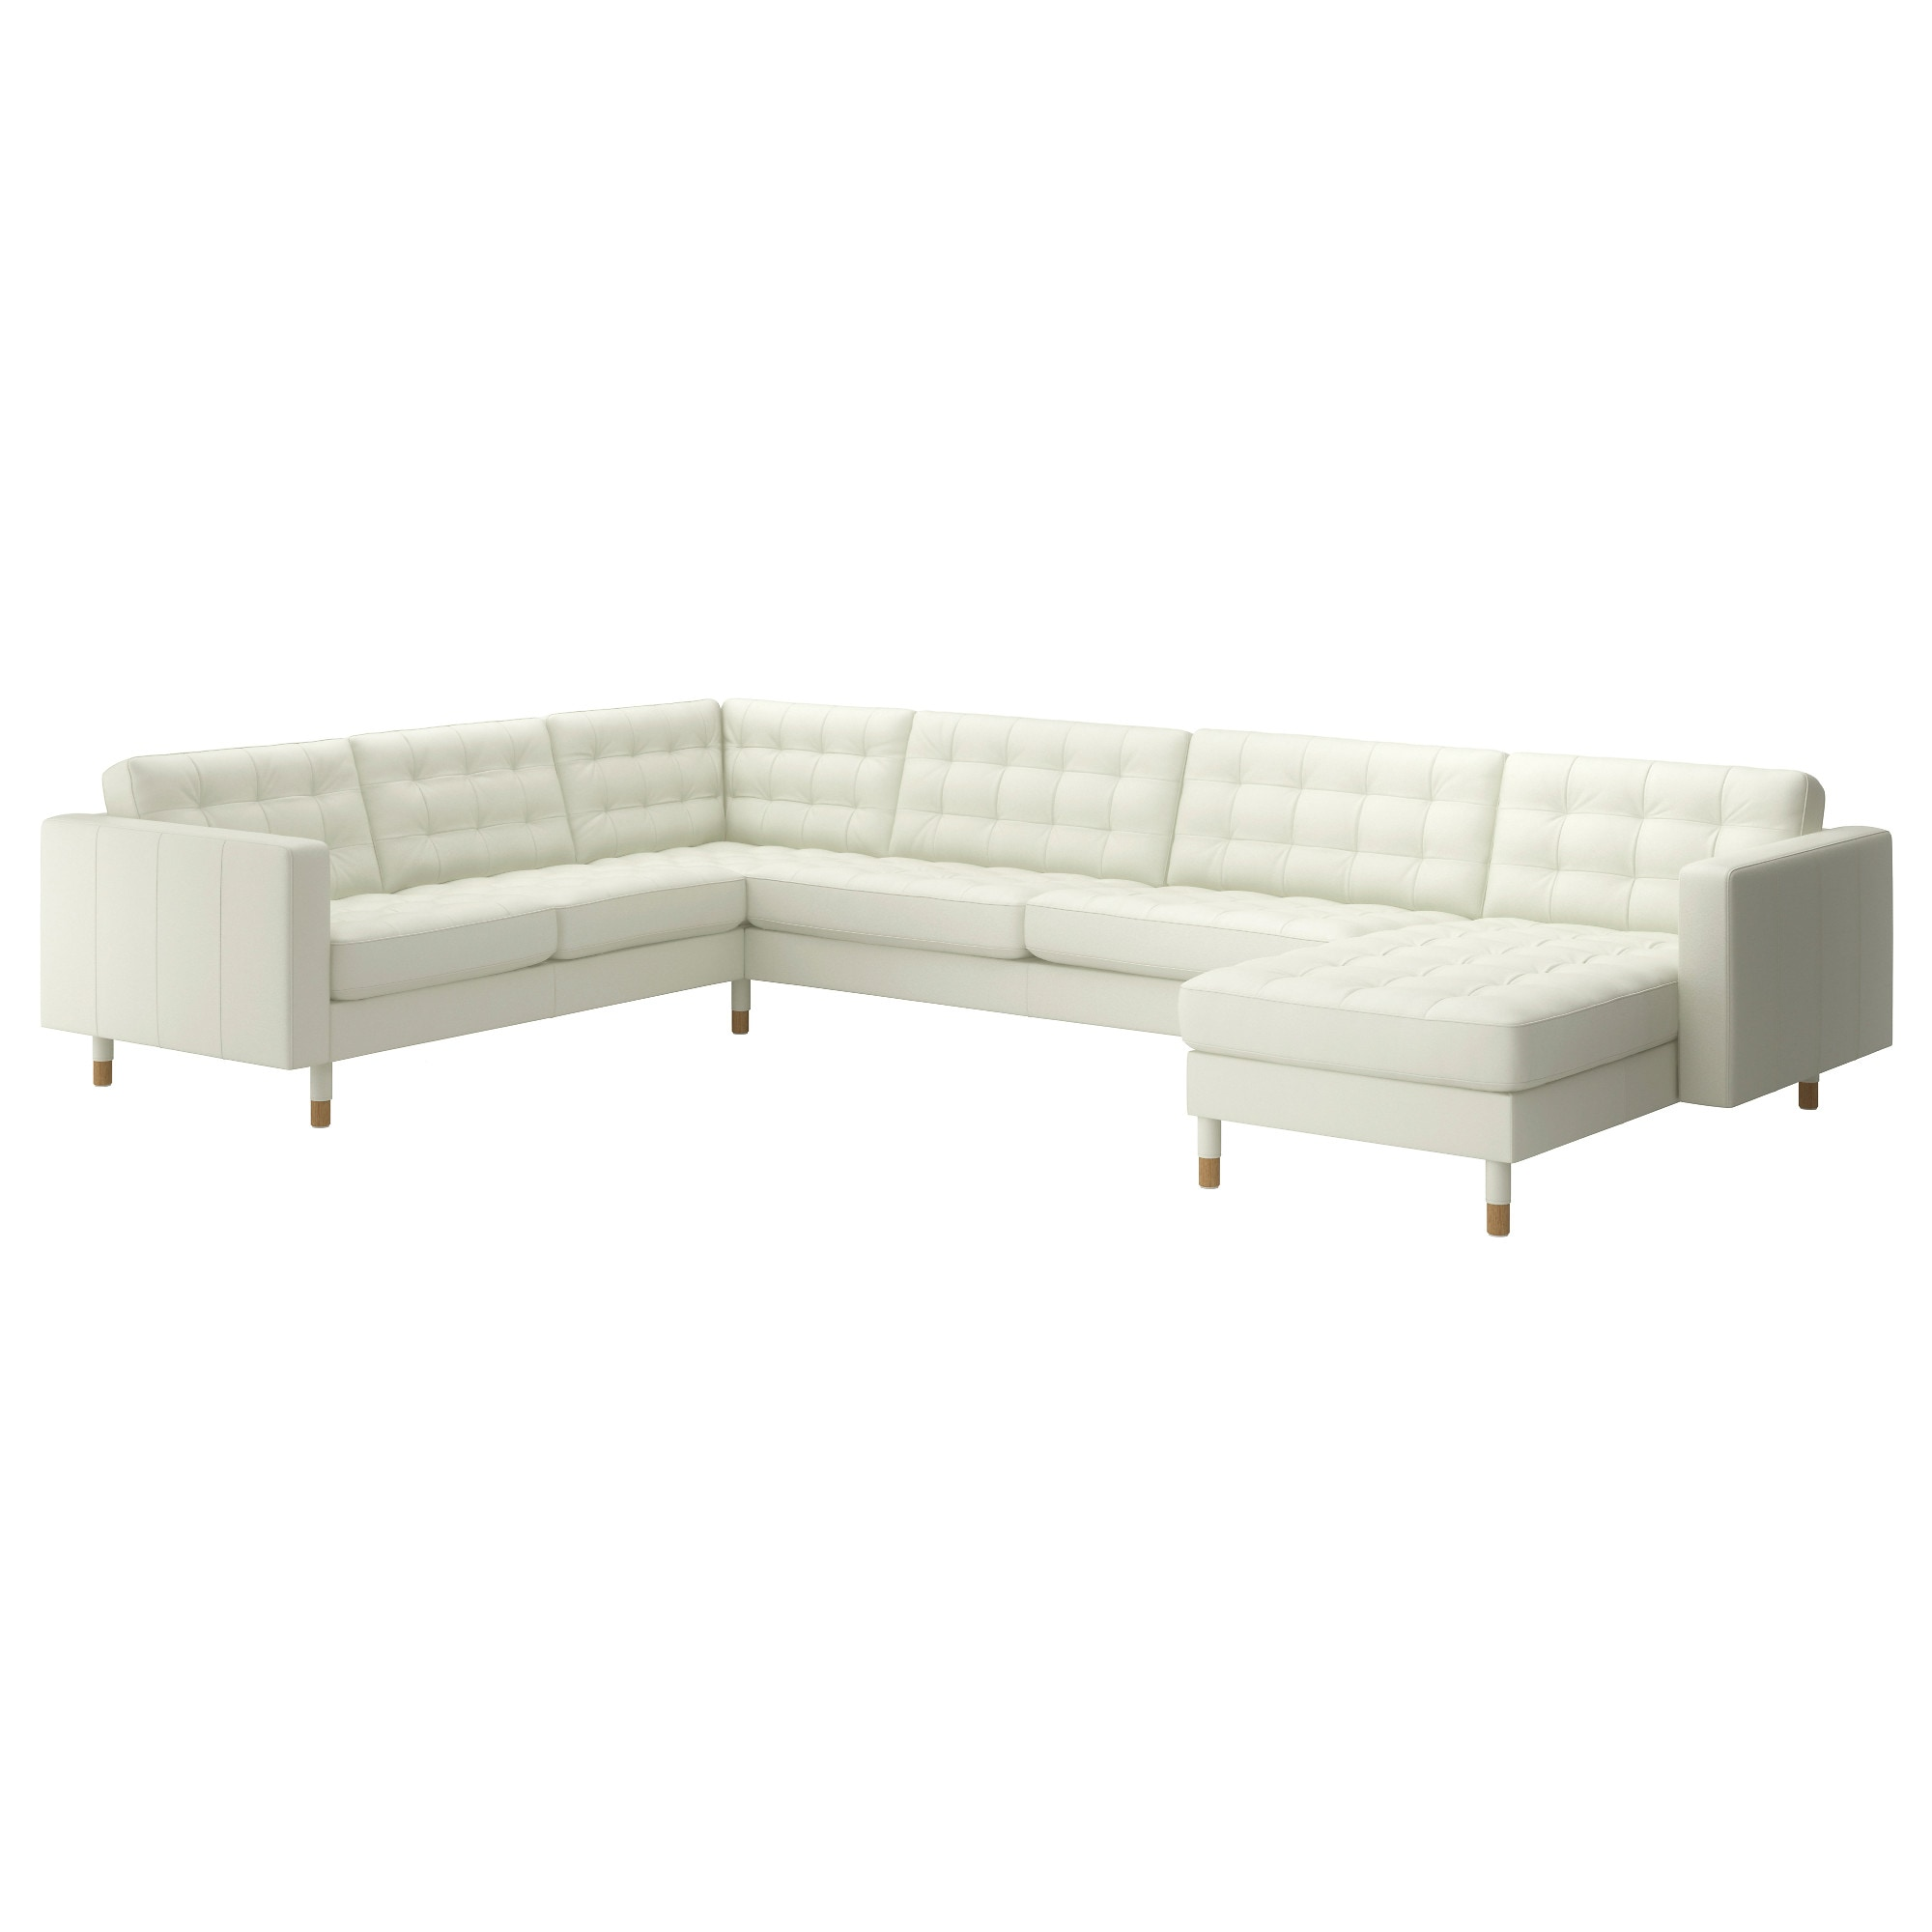 LANDSKRONA sectional 5-seat Grann with chaise Grann/Bomstad Bomstad white  sc 1 st  Ikea : ikea small sectional - Sectionals, Sofas & Couches